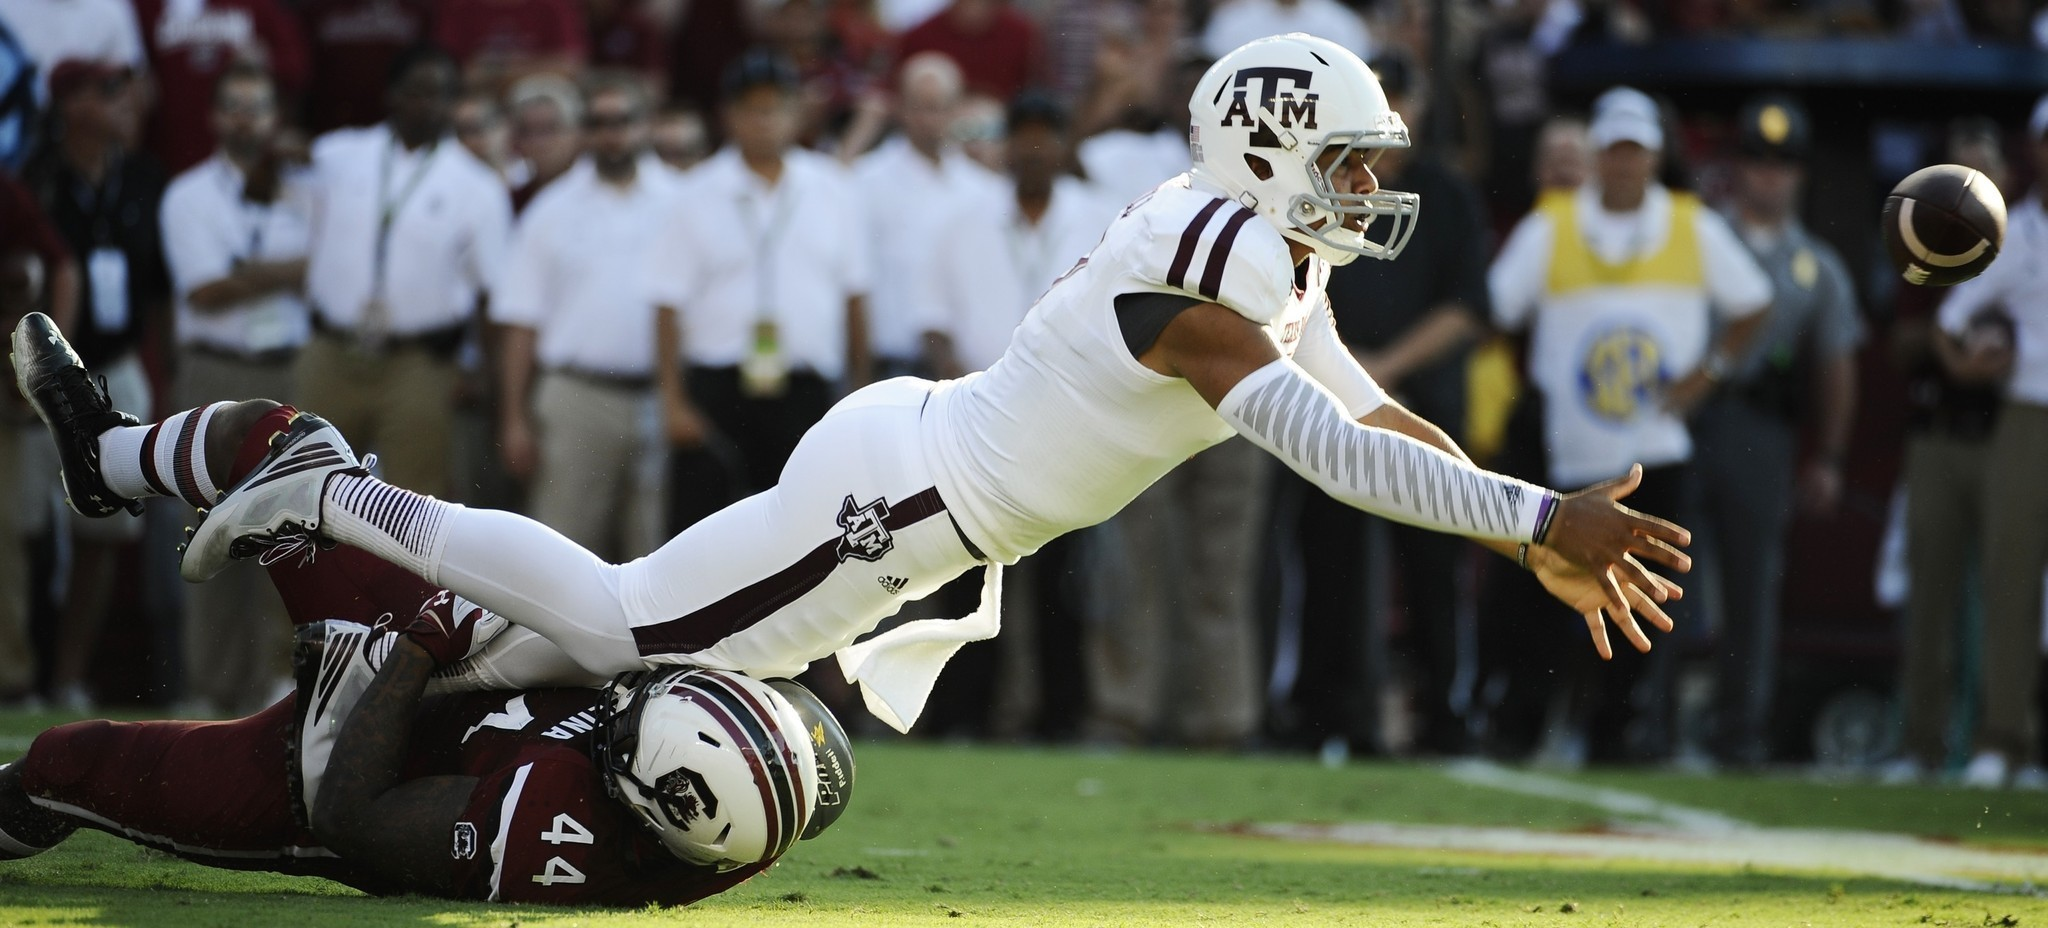 Kenny Hill's record night leads Texas A&M past South Carolina, 52-28